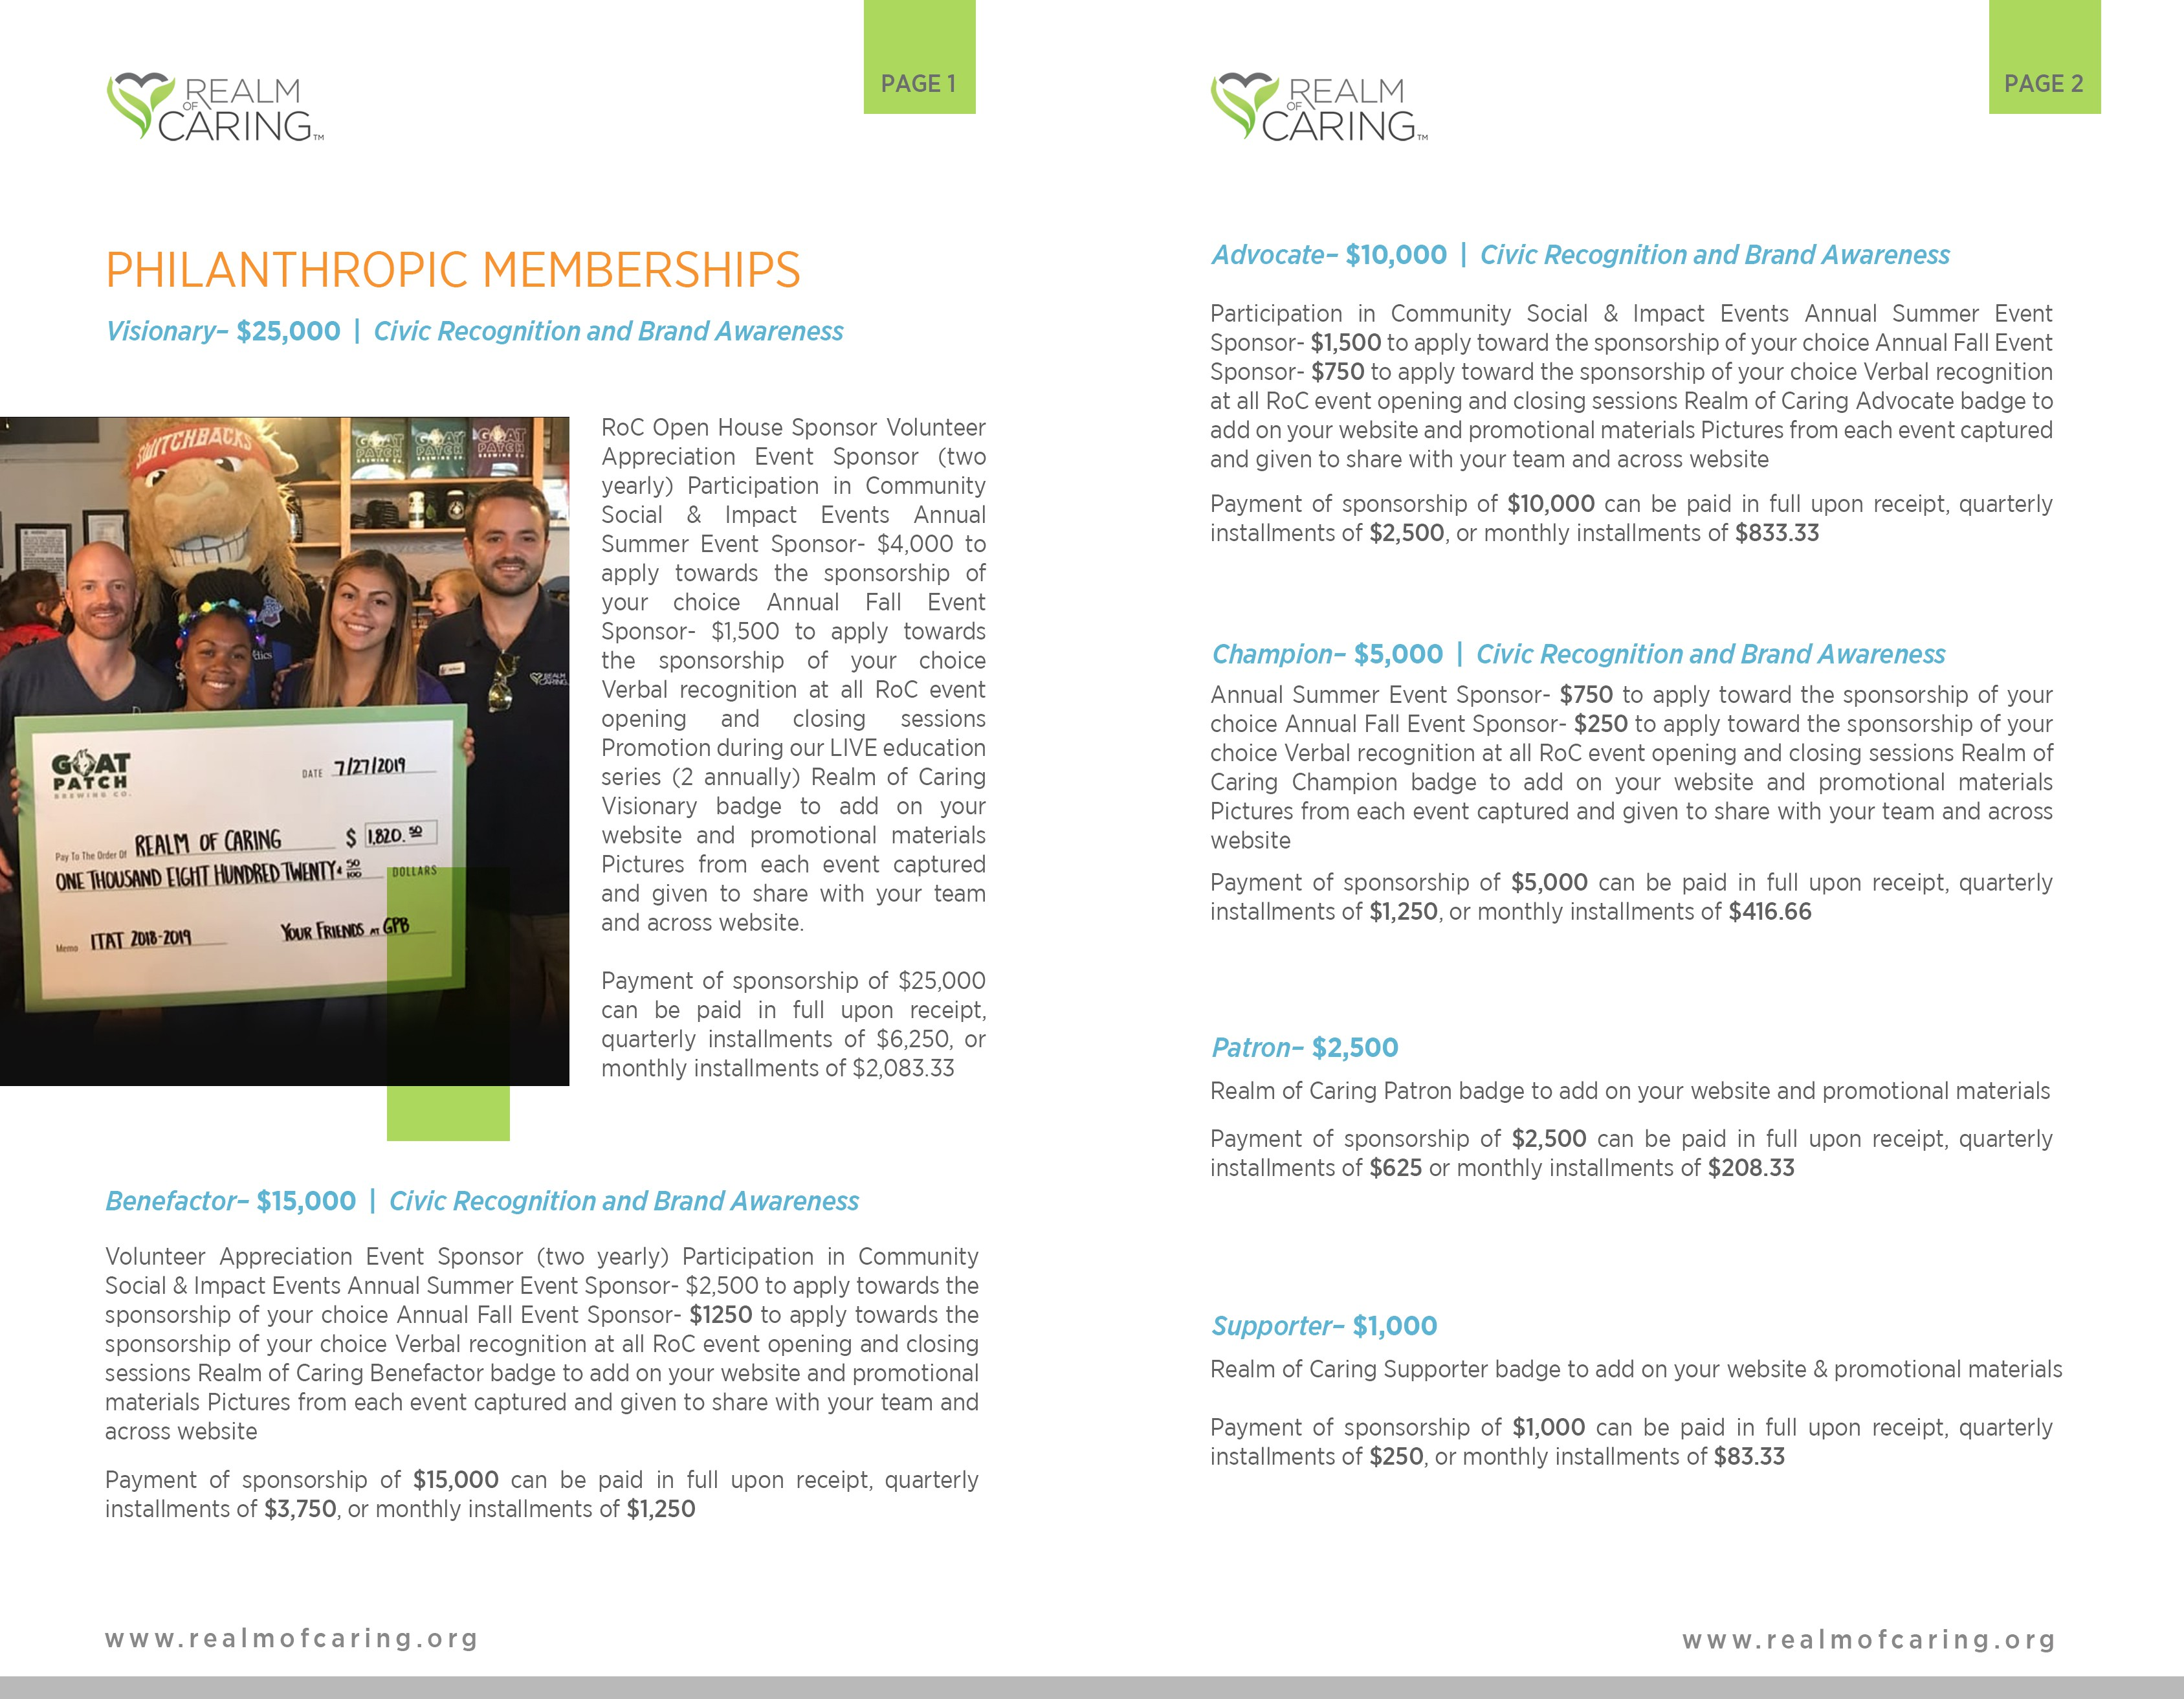 Realm of Caring Nonprofit Sponsorship Package Design!